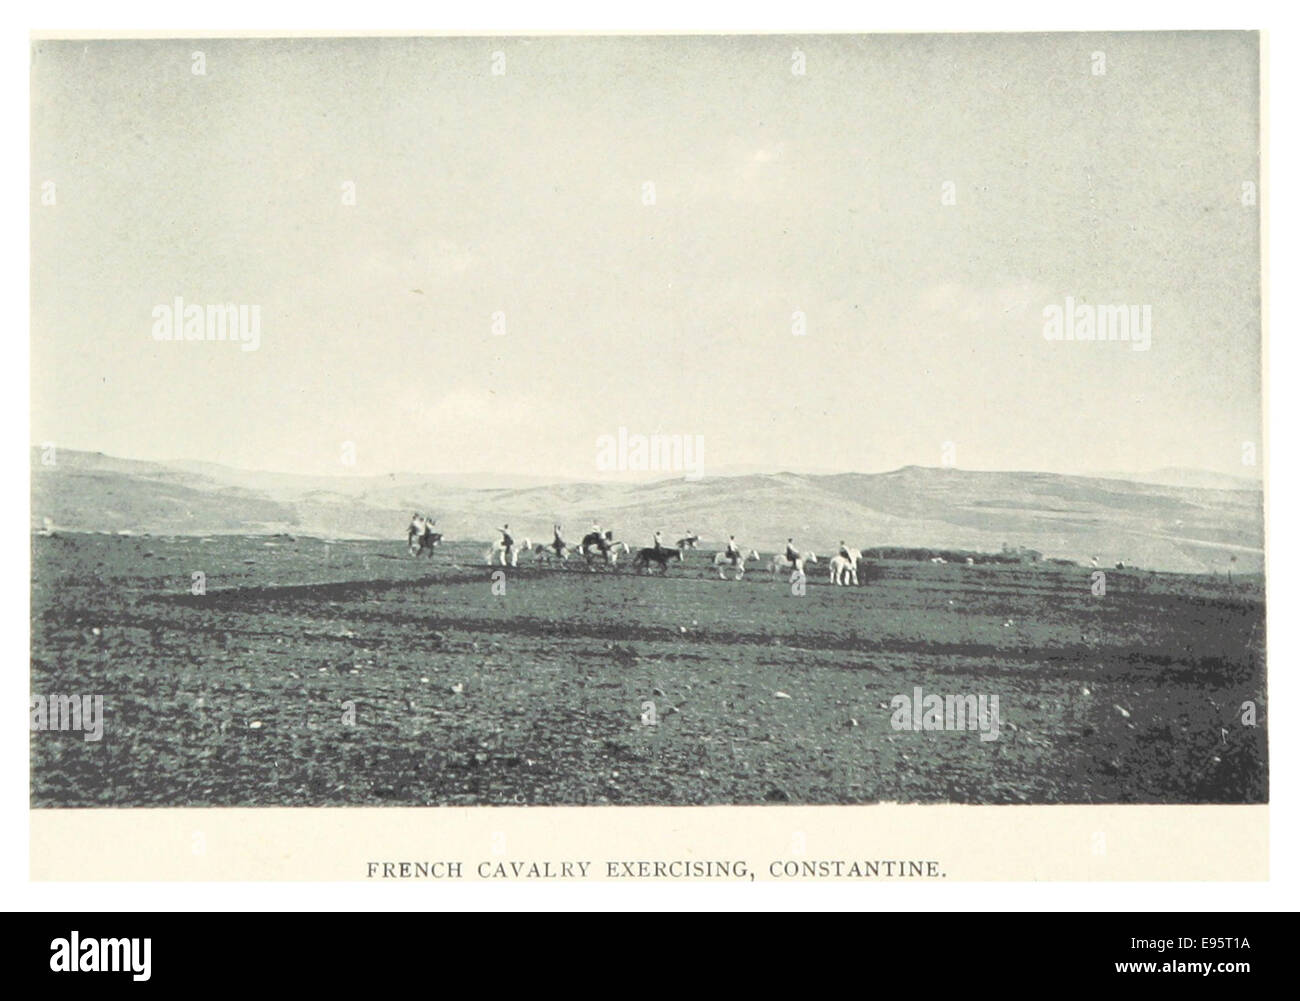 LAMBART(1895) p076 FRENCH CAVALRY EXERCISING, CONSTANTINE - Stock Image